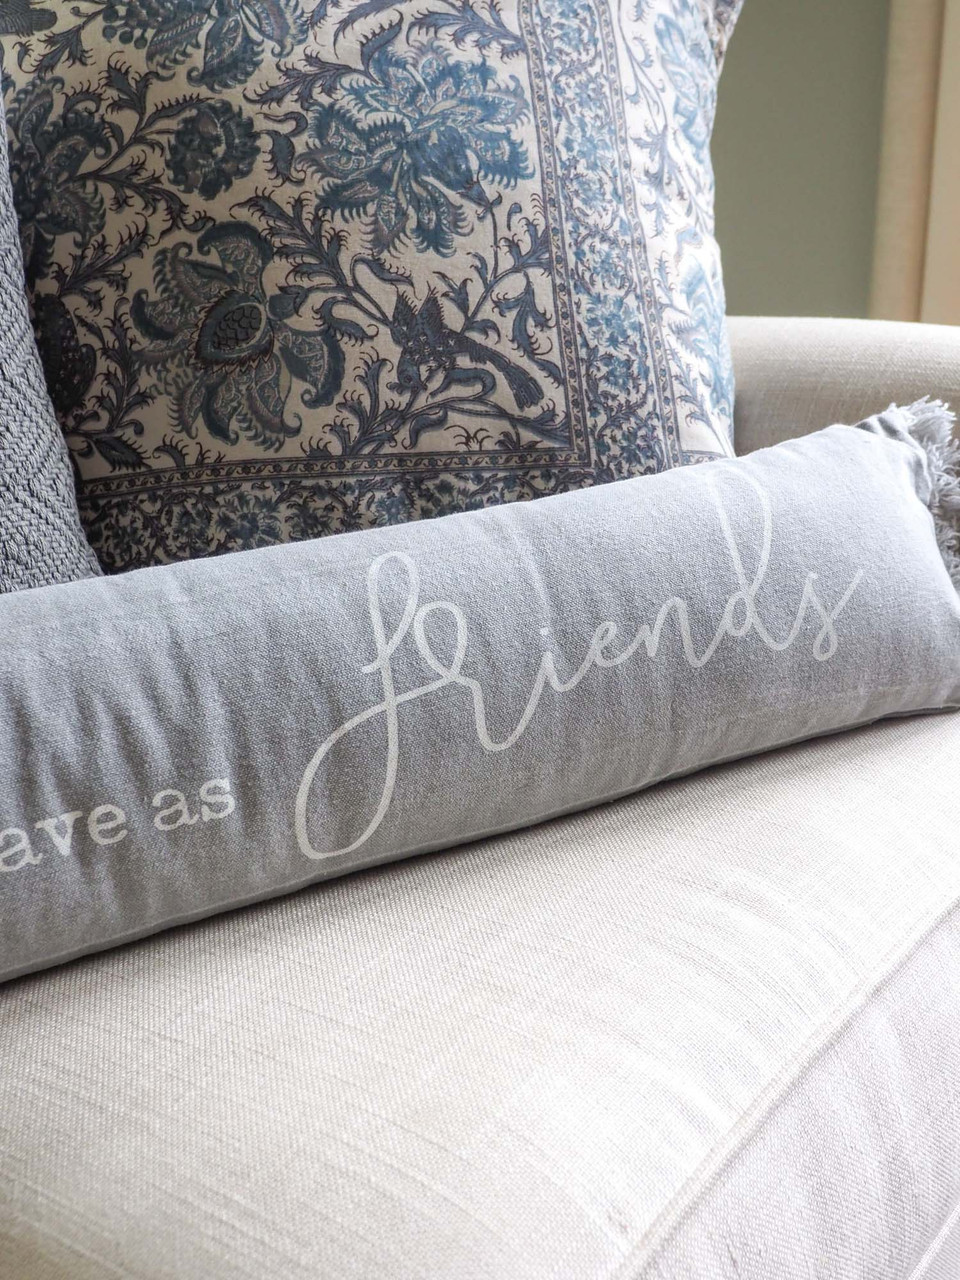 come as guests leave as friends pillow